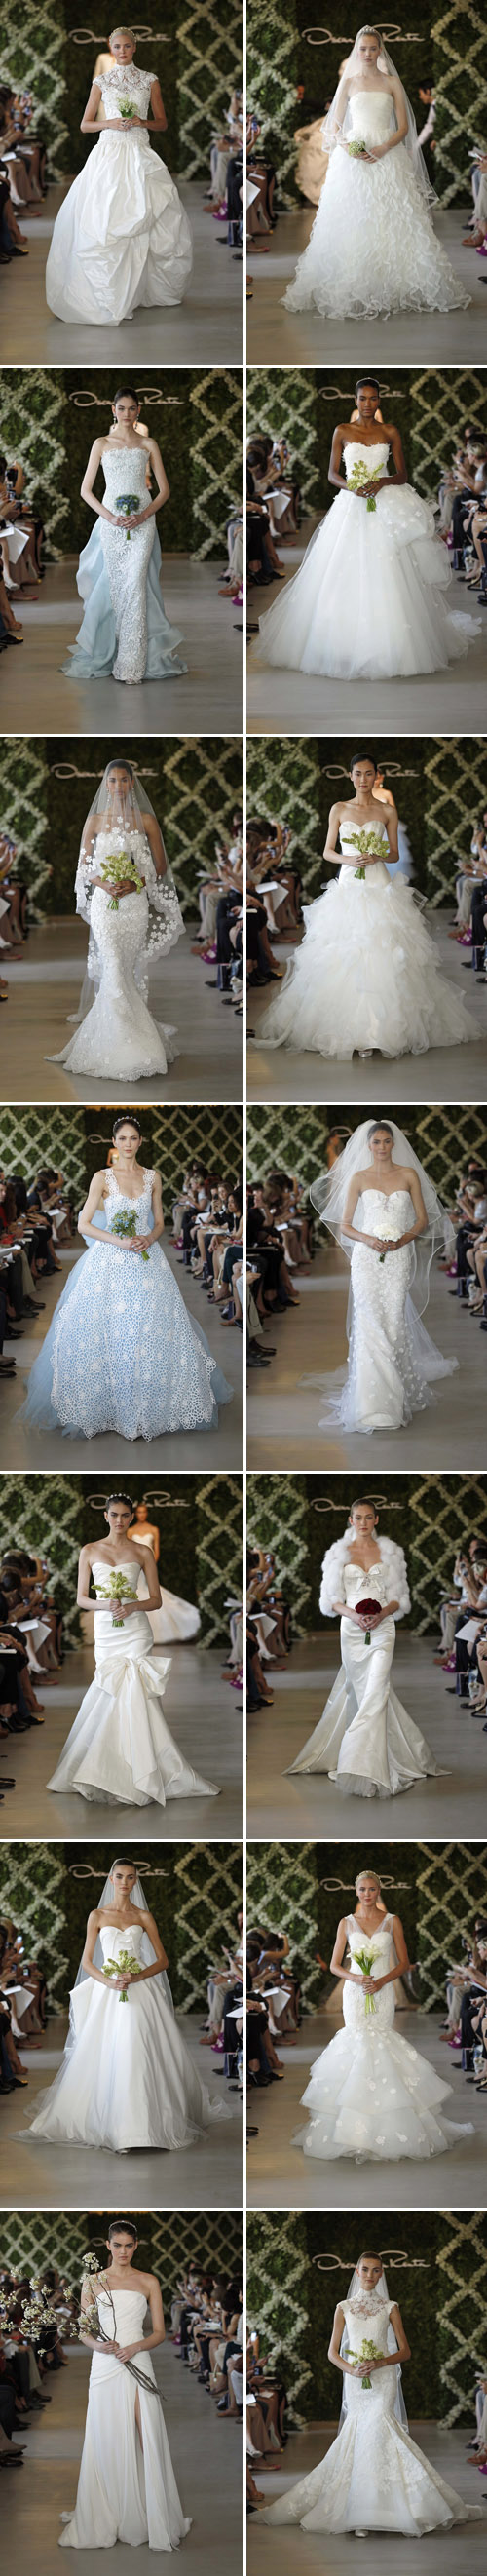 oscar de la renta bridal collection photos by dan lecca